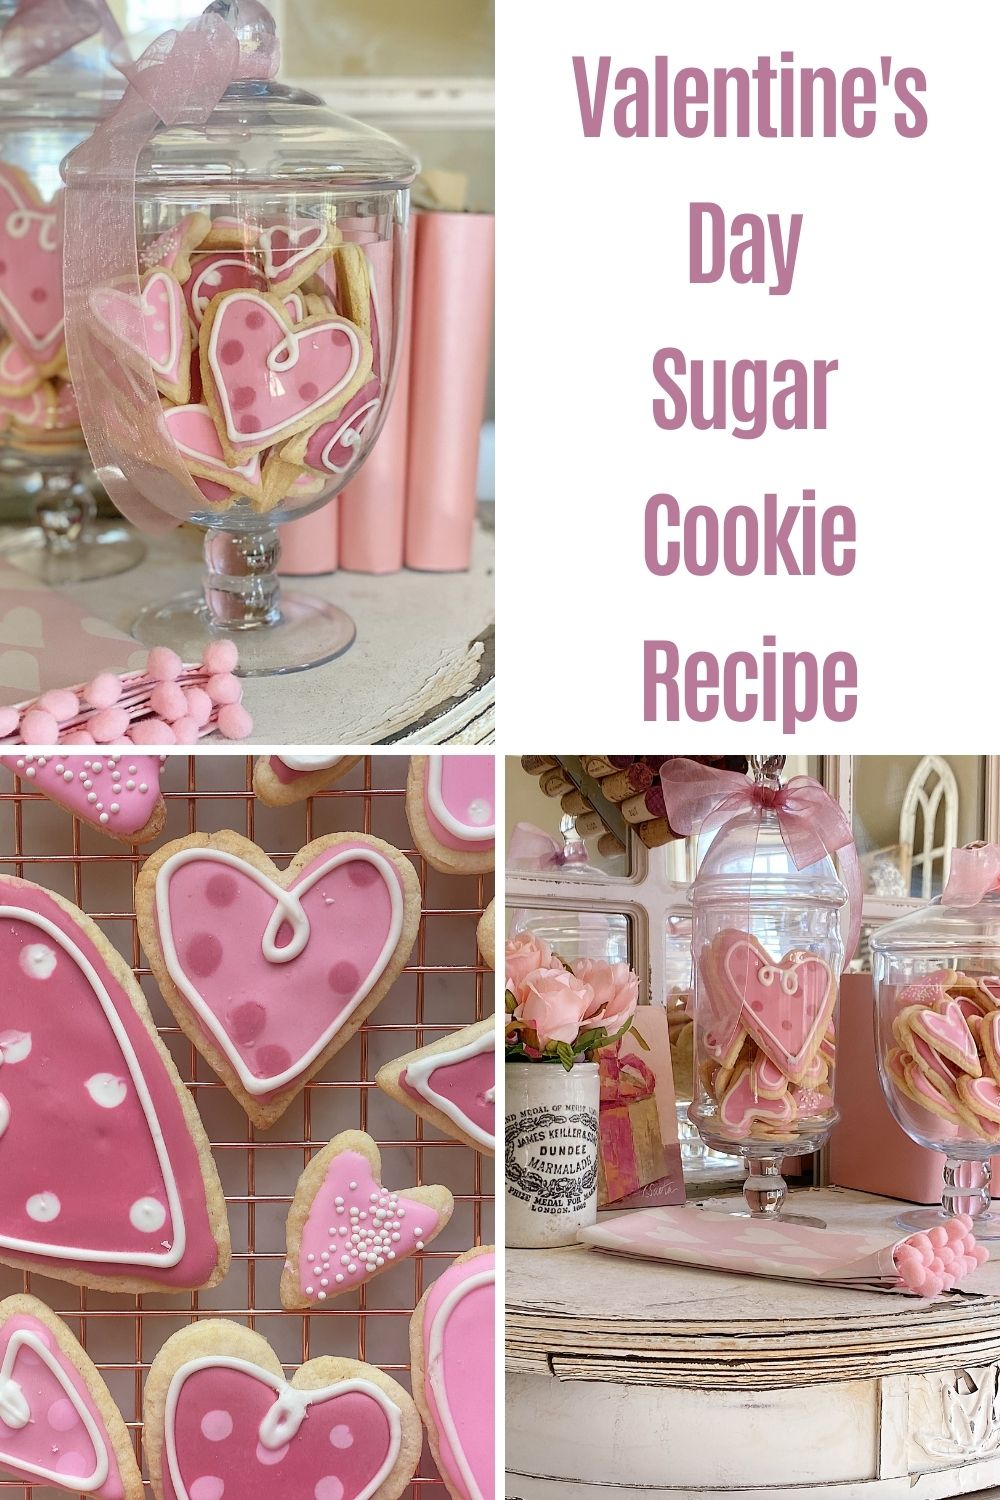 These Valentine's Day sugar cookies are so much fun to make. I love that everyone can learn how to decorate these cookies, regardless of whether you have done it before.